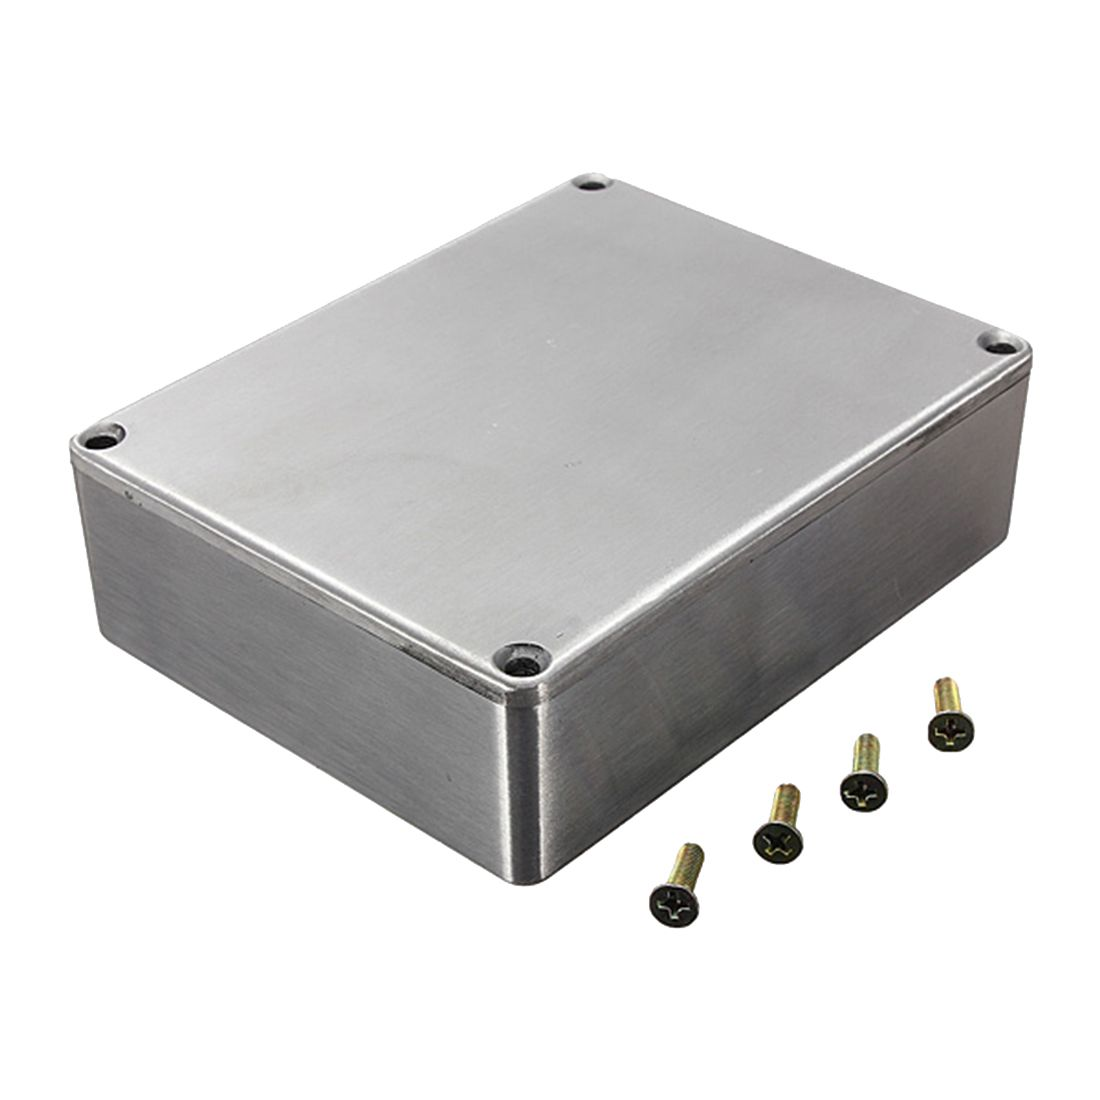 SALES 5x1590BB Guitar Effects Box Container Aluminum 120x95x35mm Silver<br>